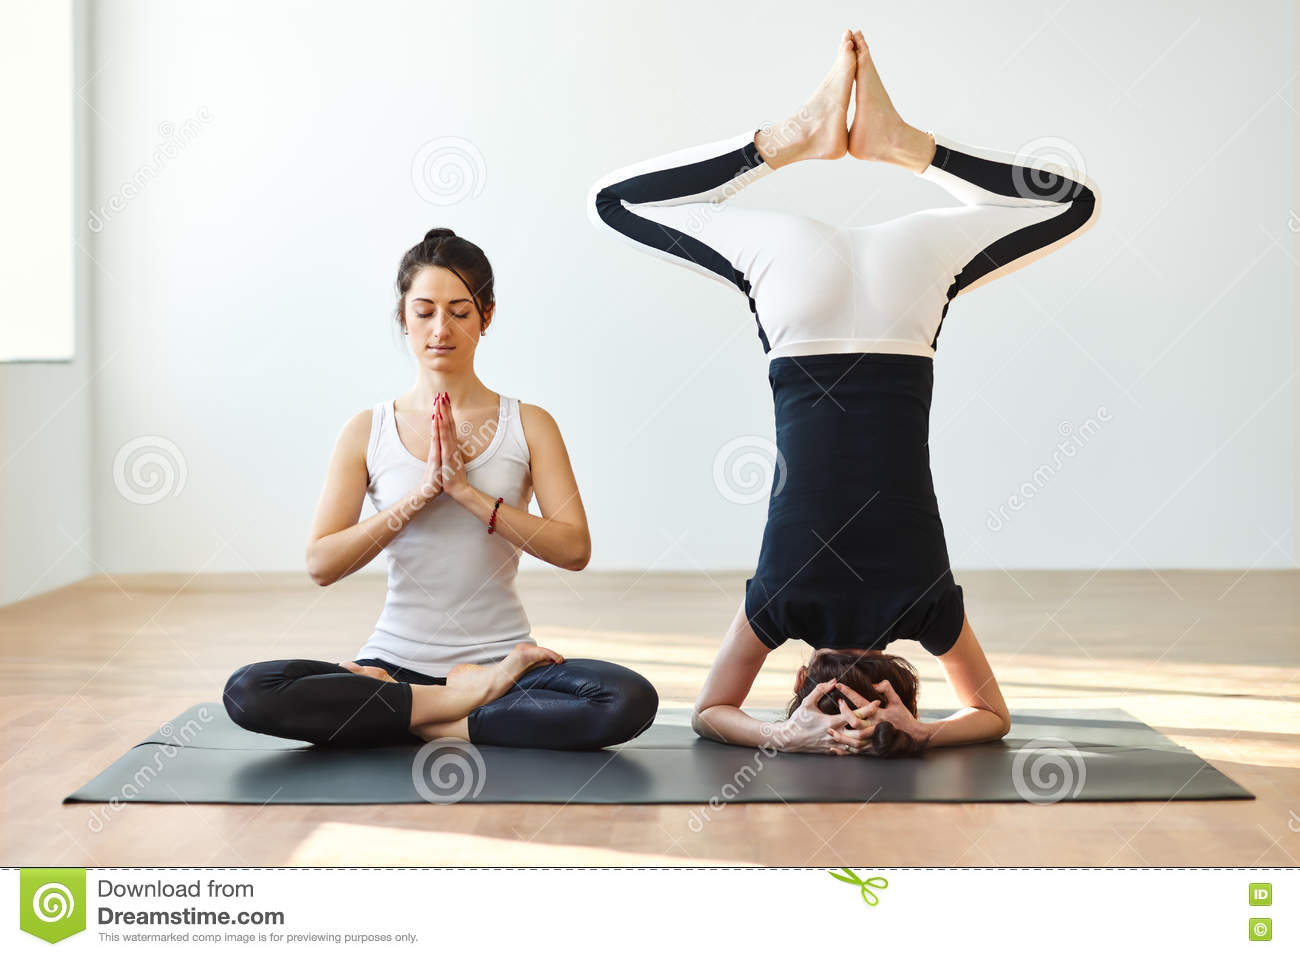 Download Two Young Women Practicing Yoga Poses And Asanas Stock Photo